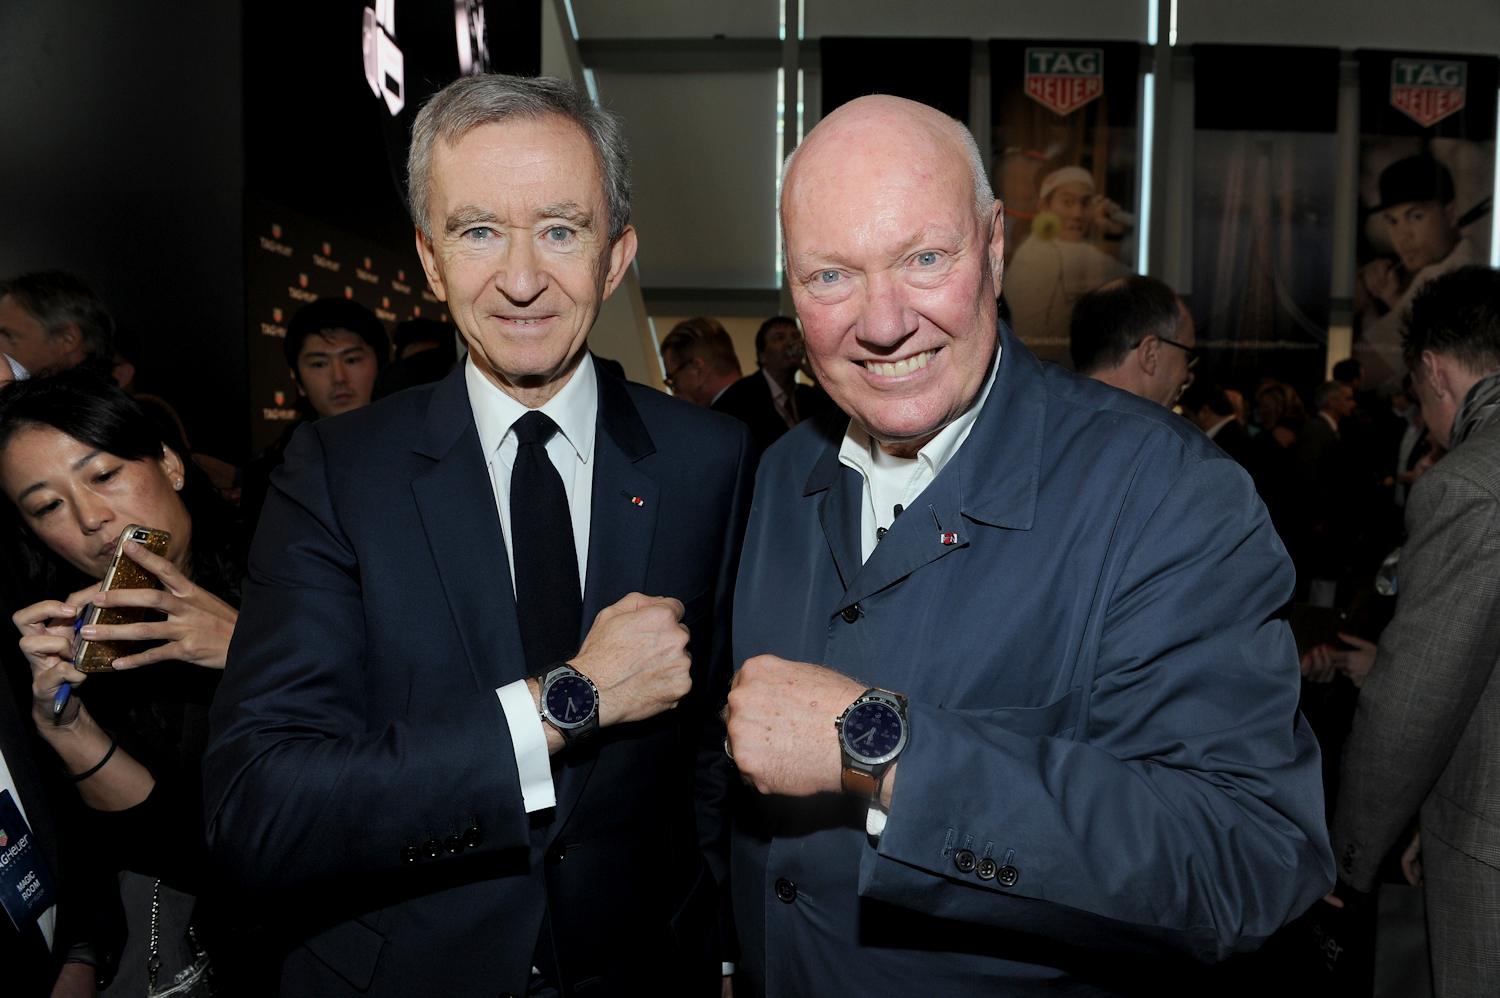 Chairman and CEO of LVMH Bernard Arnault (left) poses with Jean-Claude Biver for a traditional wrist shot.